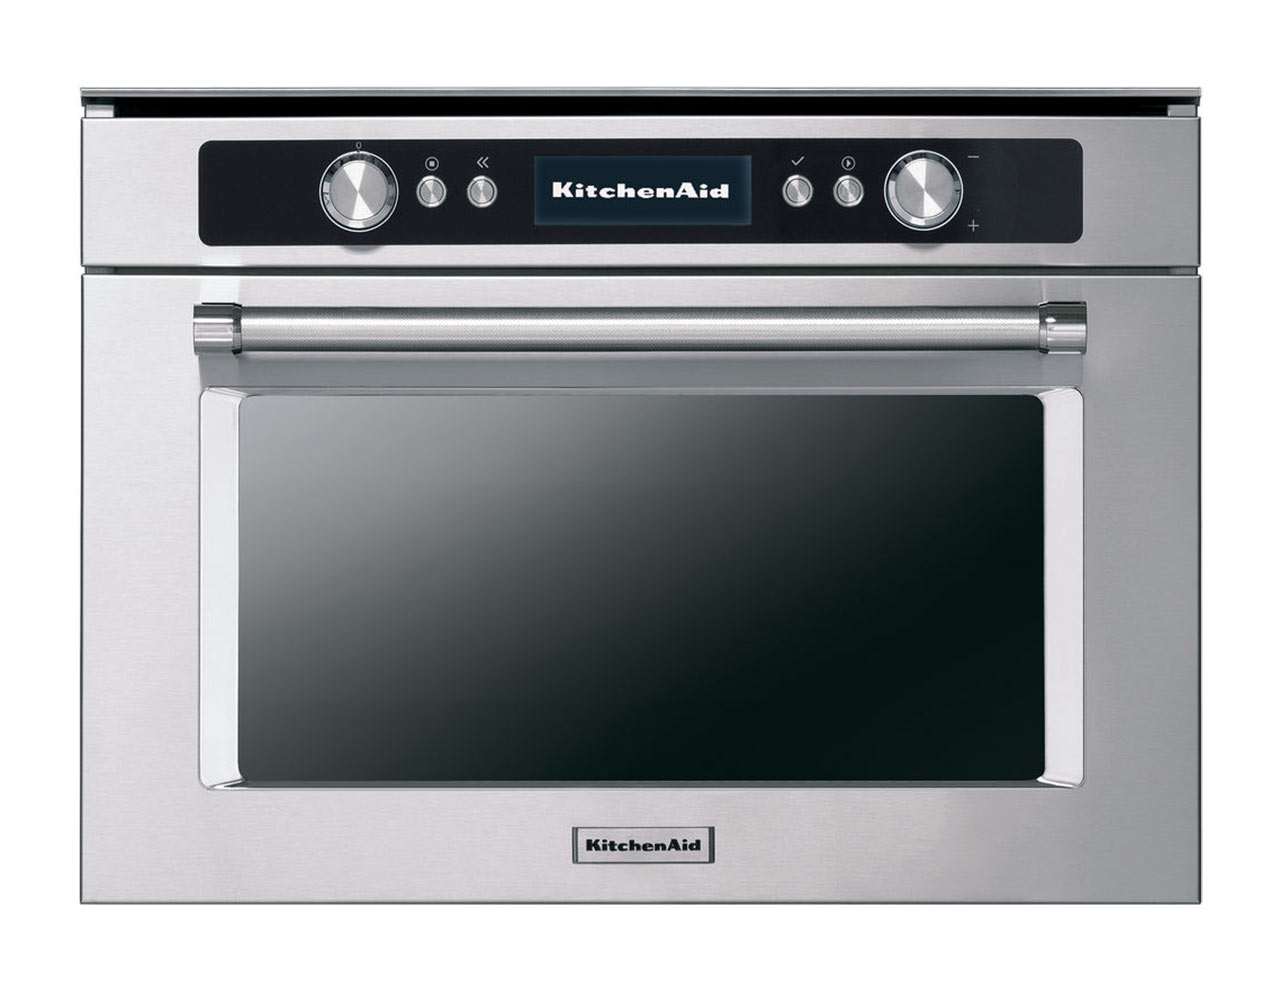 KitchenAid, KOQCX 45600